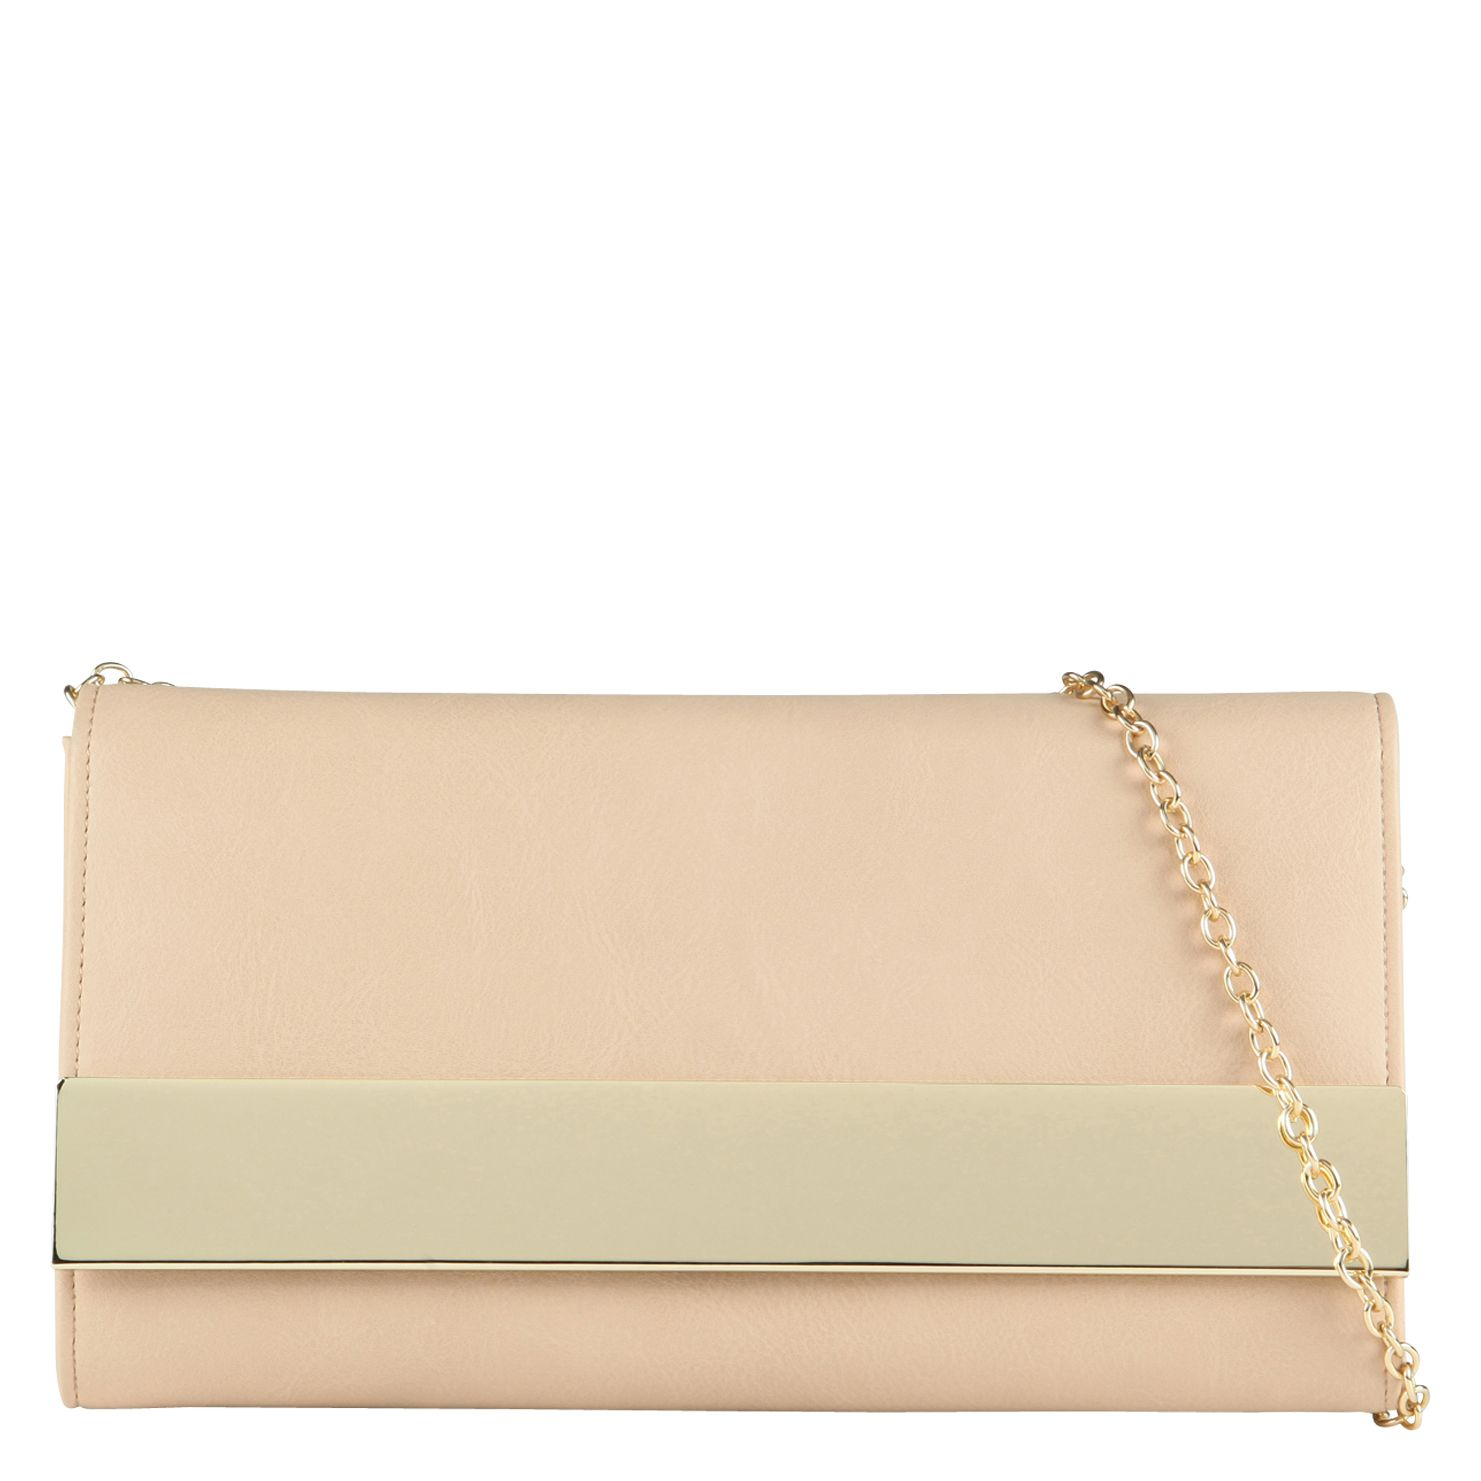 Propata clutch bag